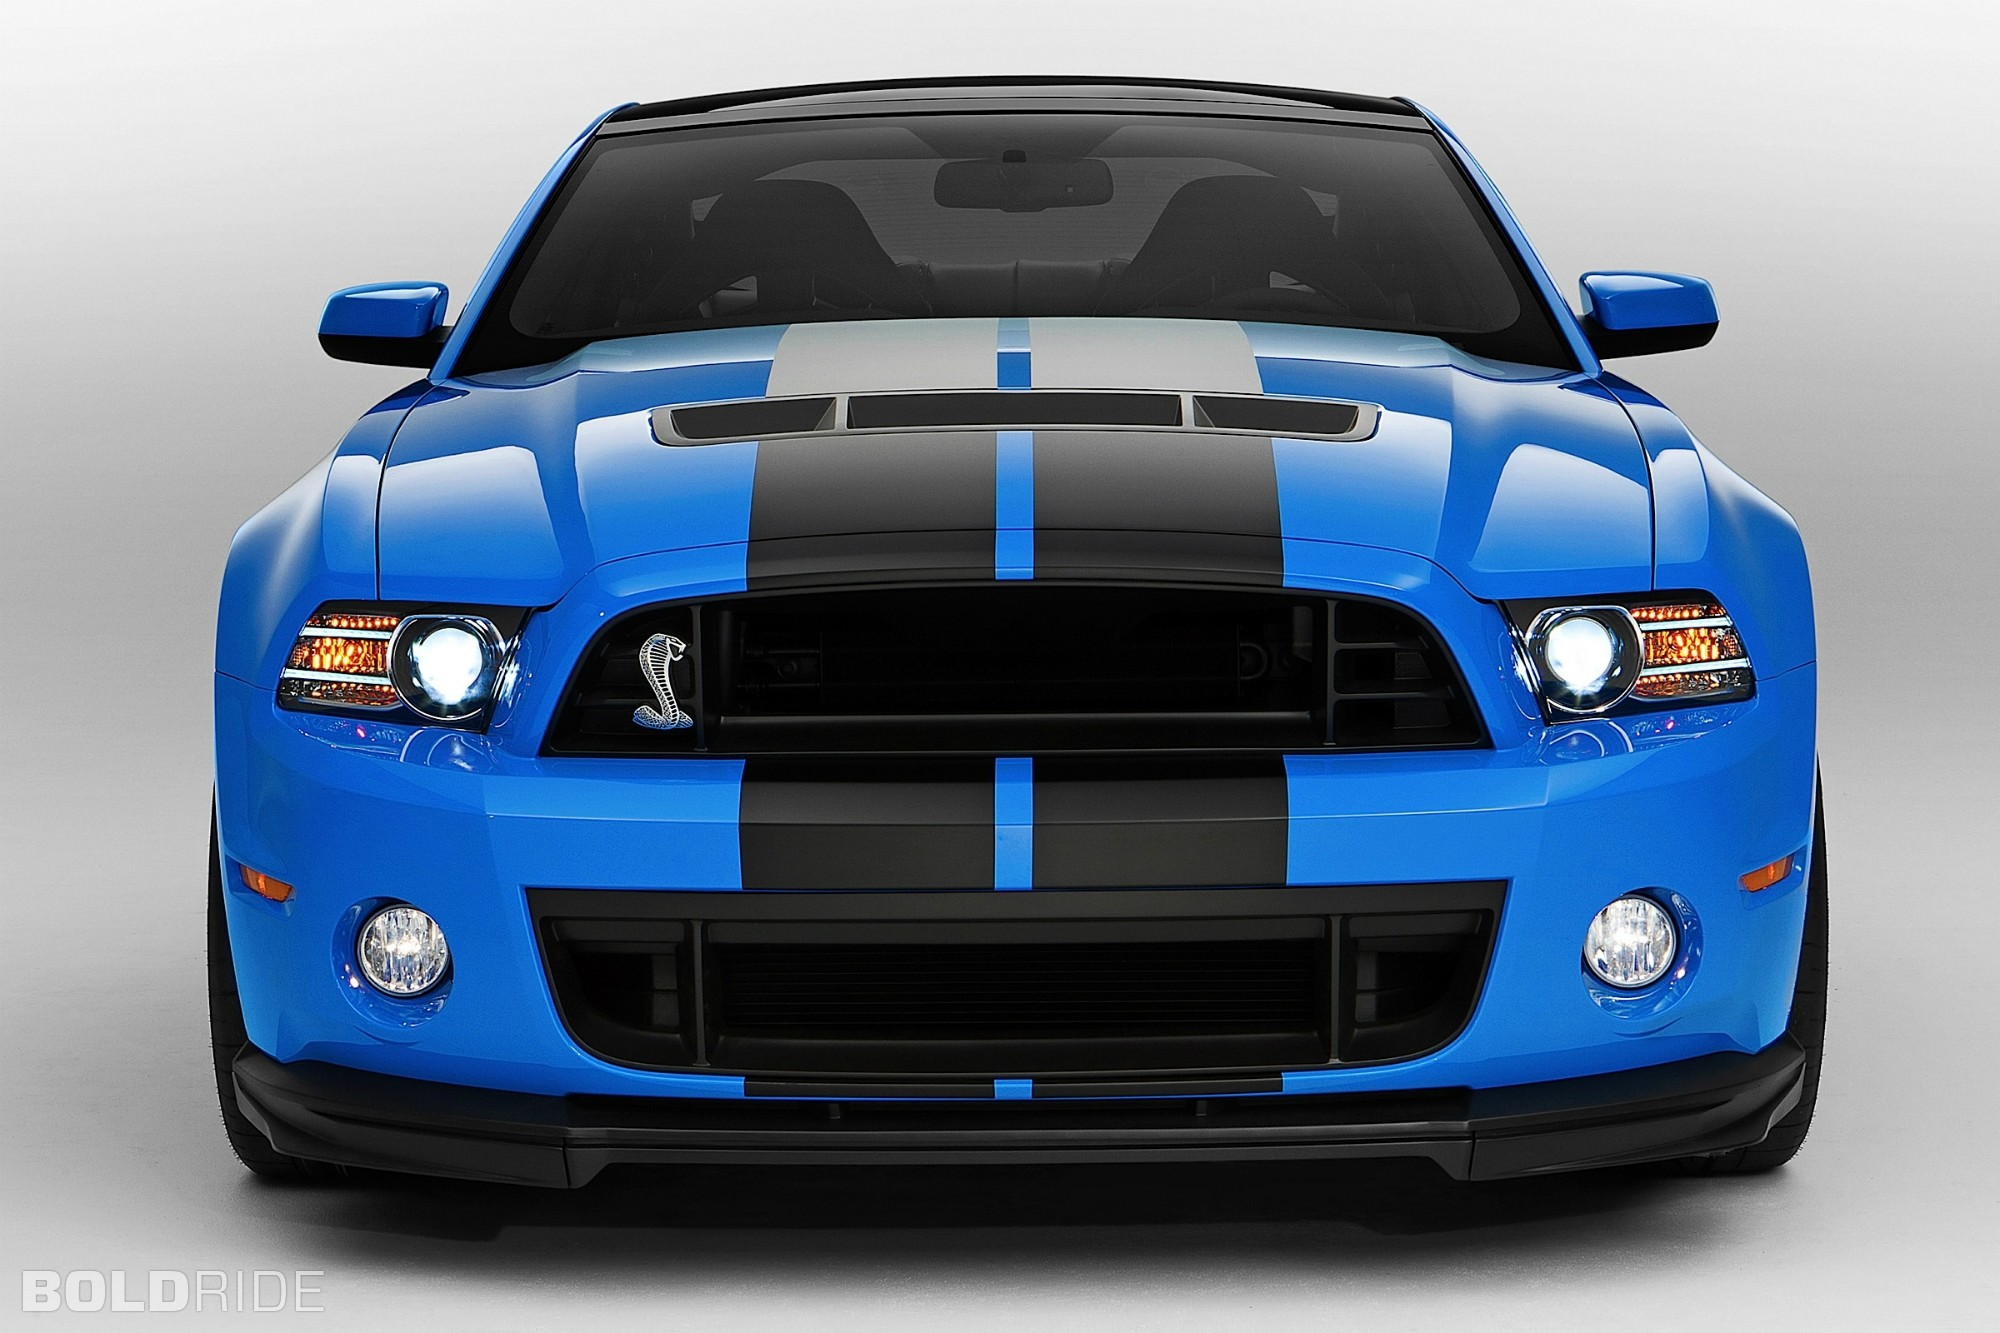 Related Wallpapers from Ford Mustang 1967 Eleanor. 2015 Ford Mustang Shelby  GT500